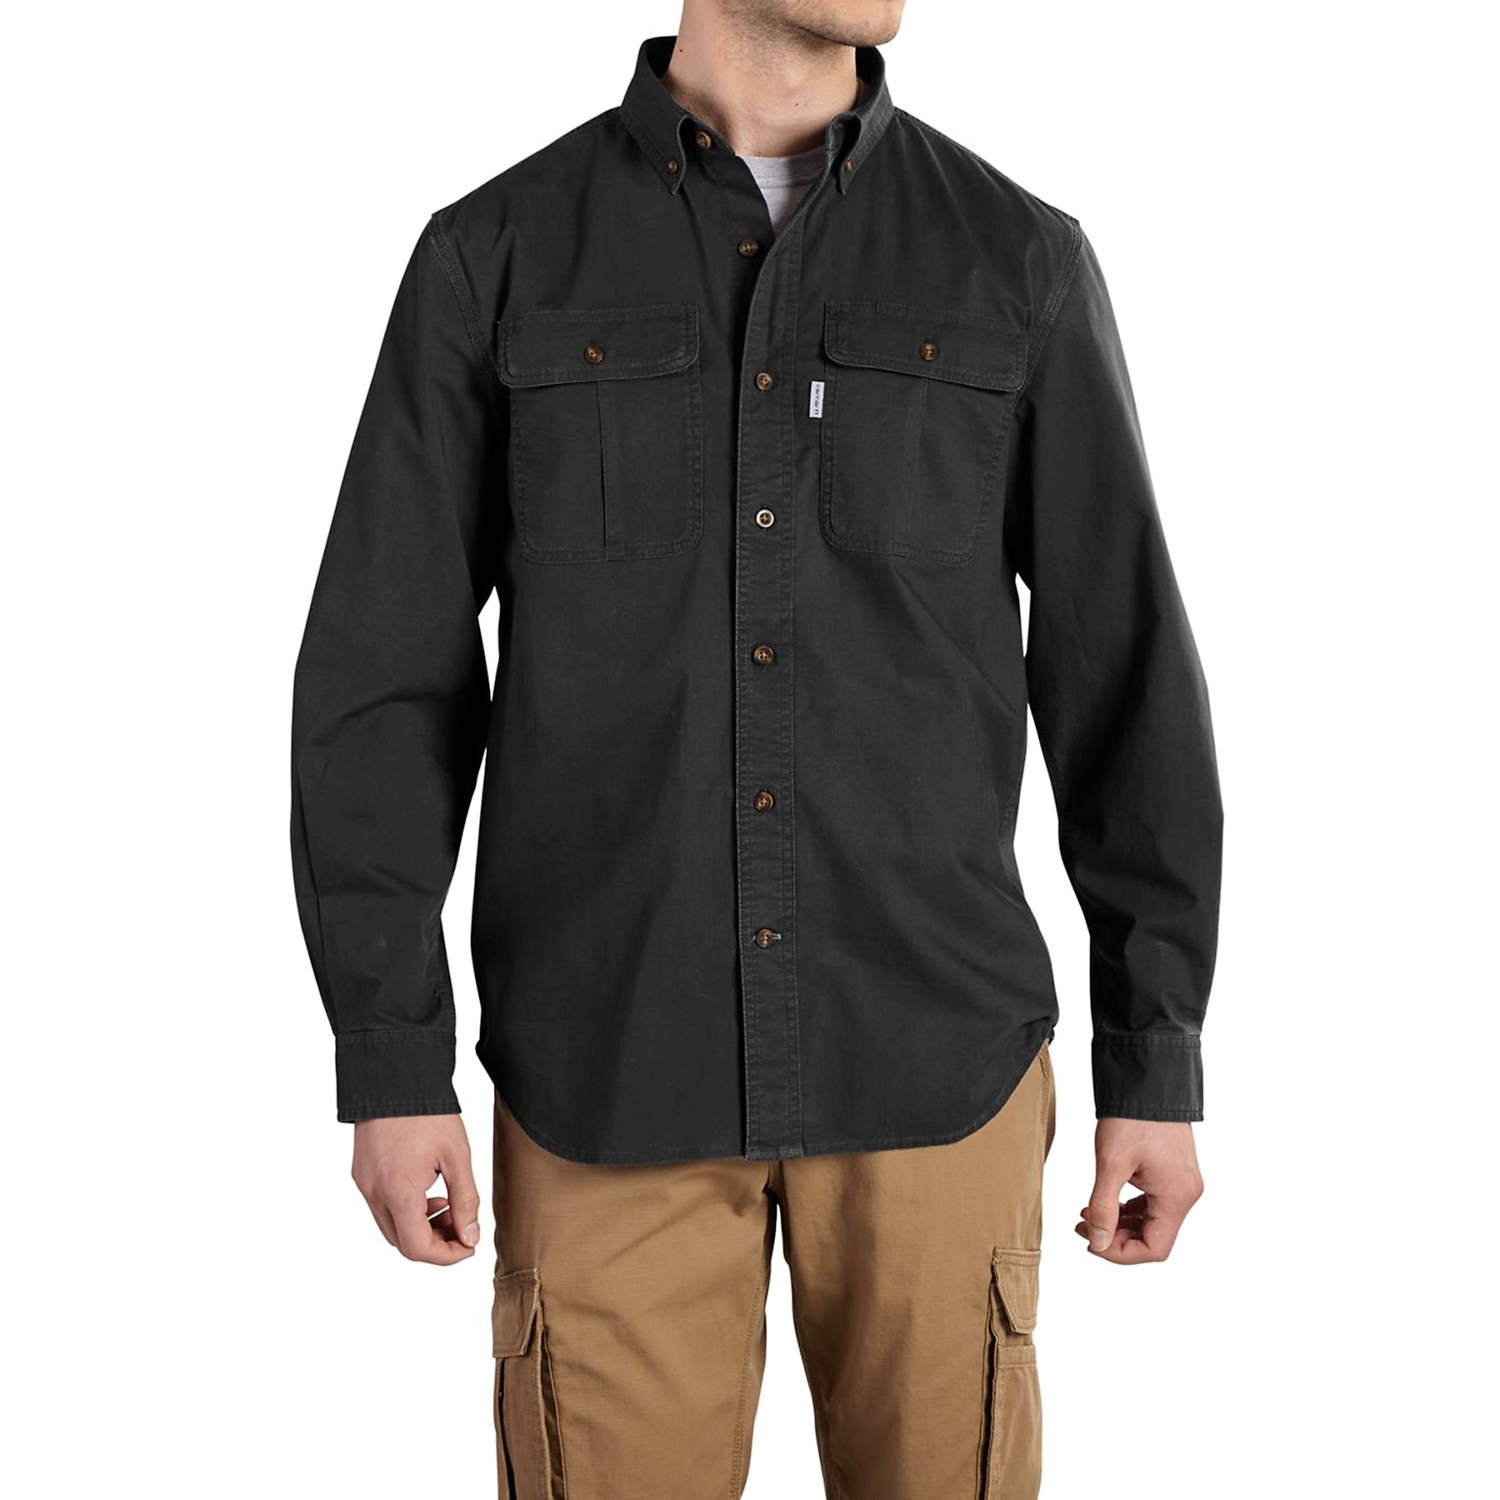 Carhartt foreman solid work shirt for big and tall men 110hc Carhartt work shirts tall